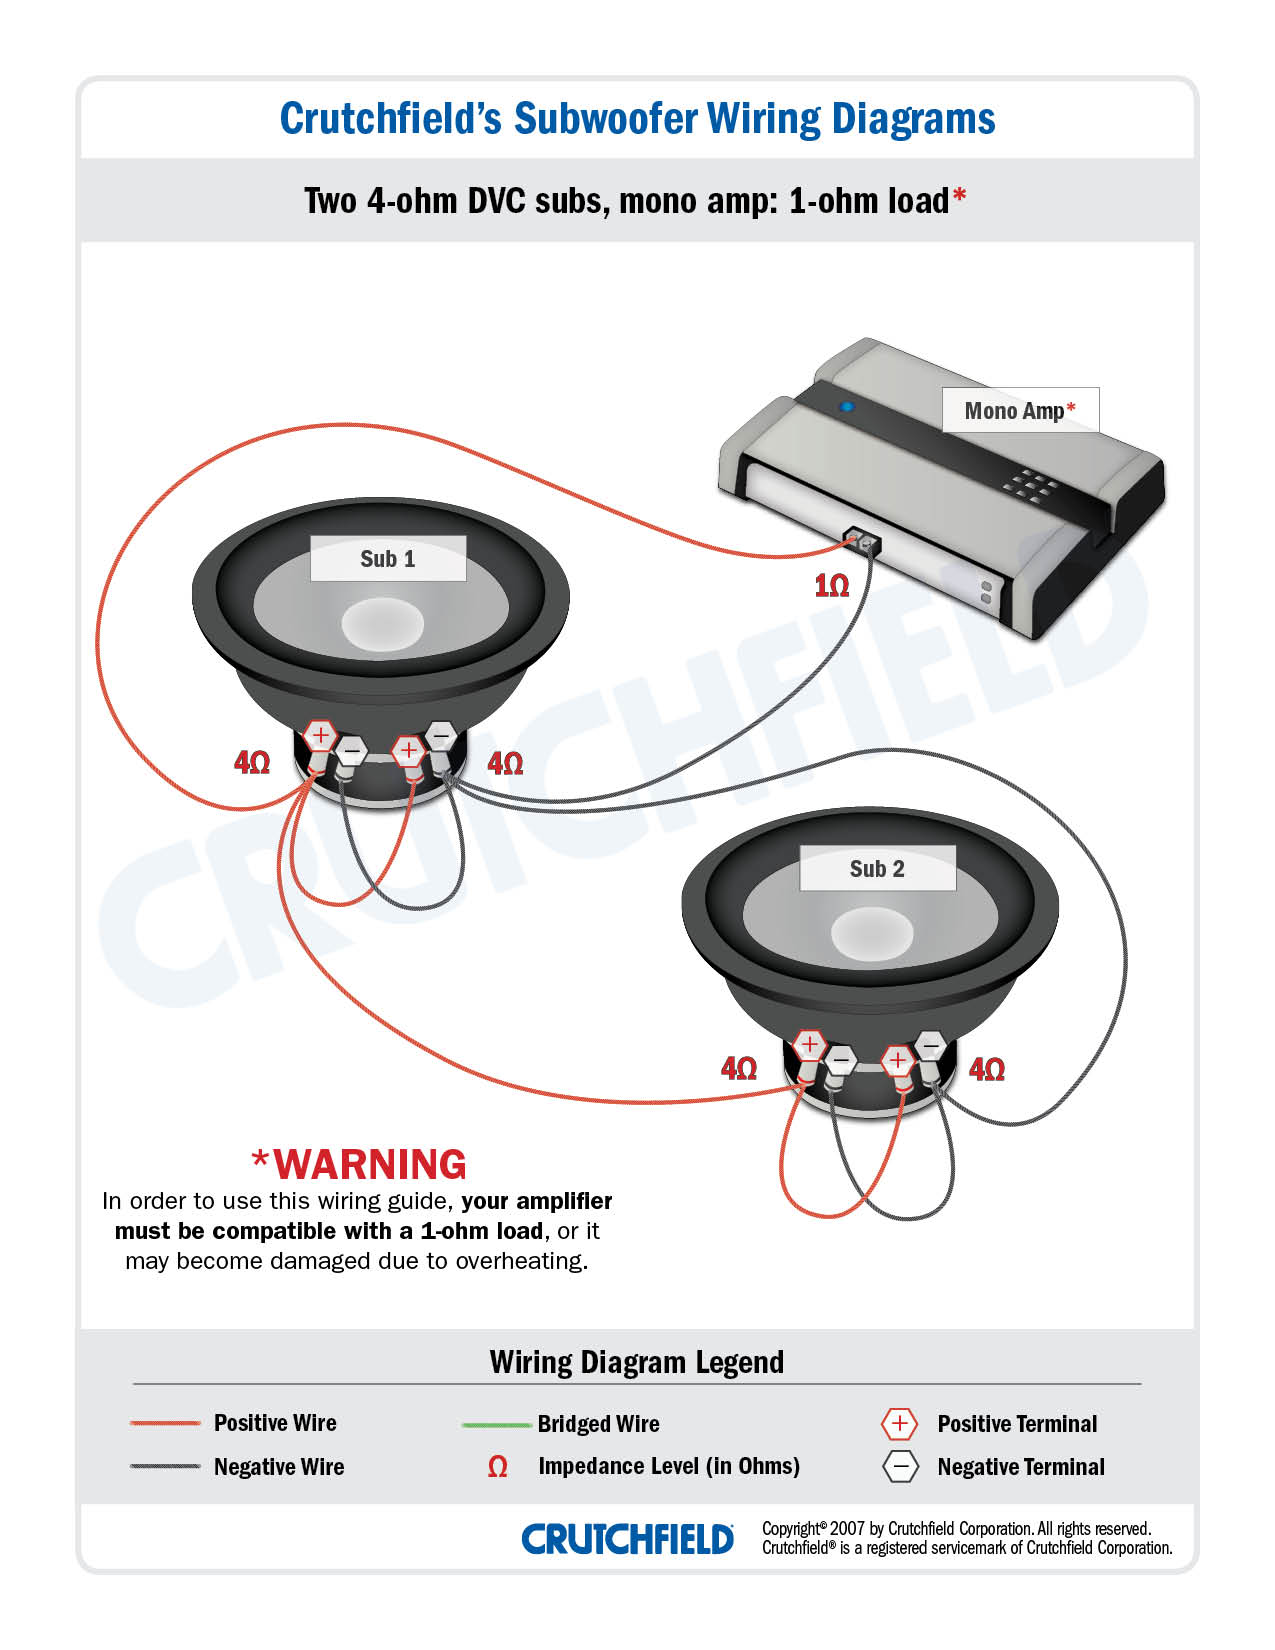 2 DVC 4 ohm mono low imp jl audio jx500 1d mono subwoofer amplifier 500 watts rms x 1 at 4 Channel Amp Wiring Diagram at edmiracle.co